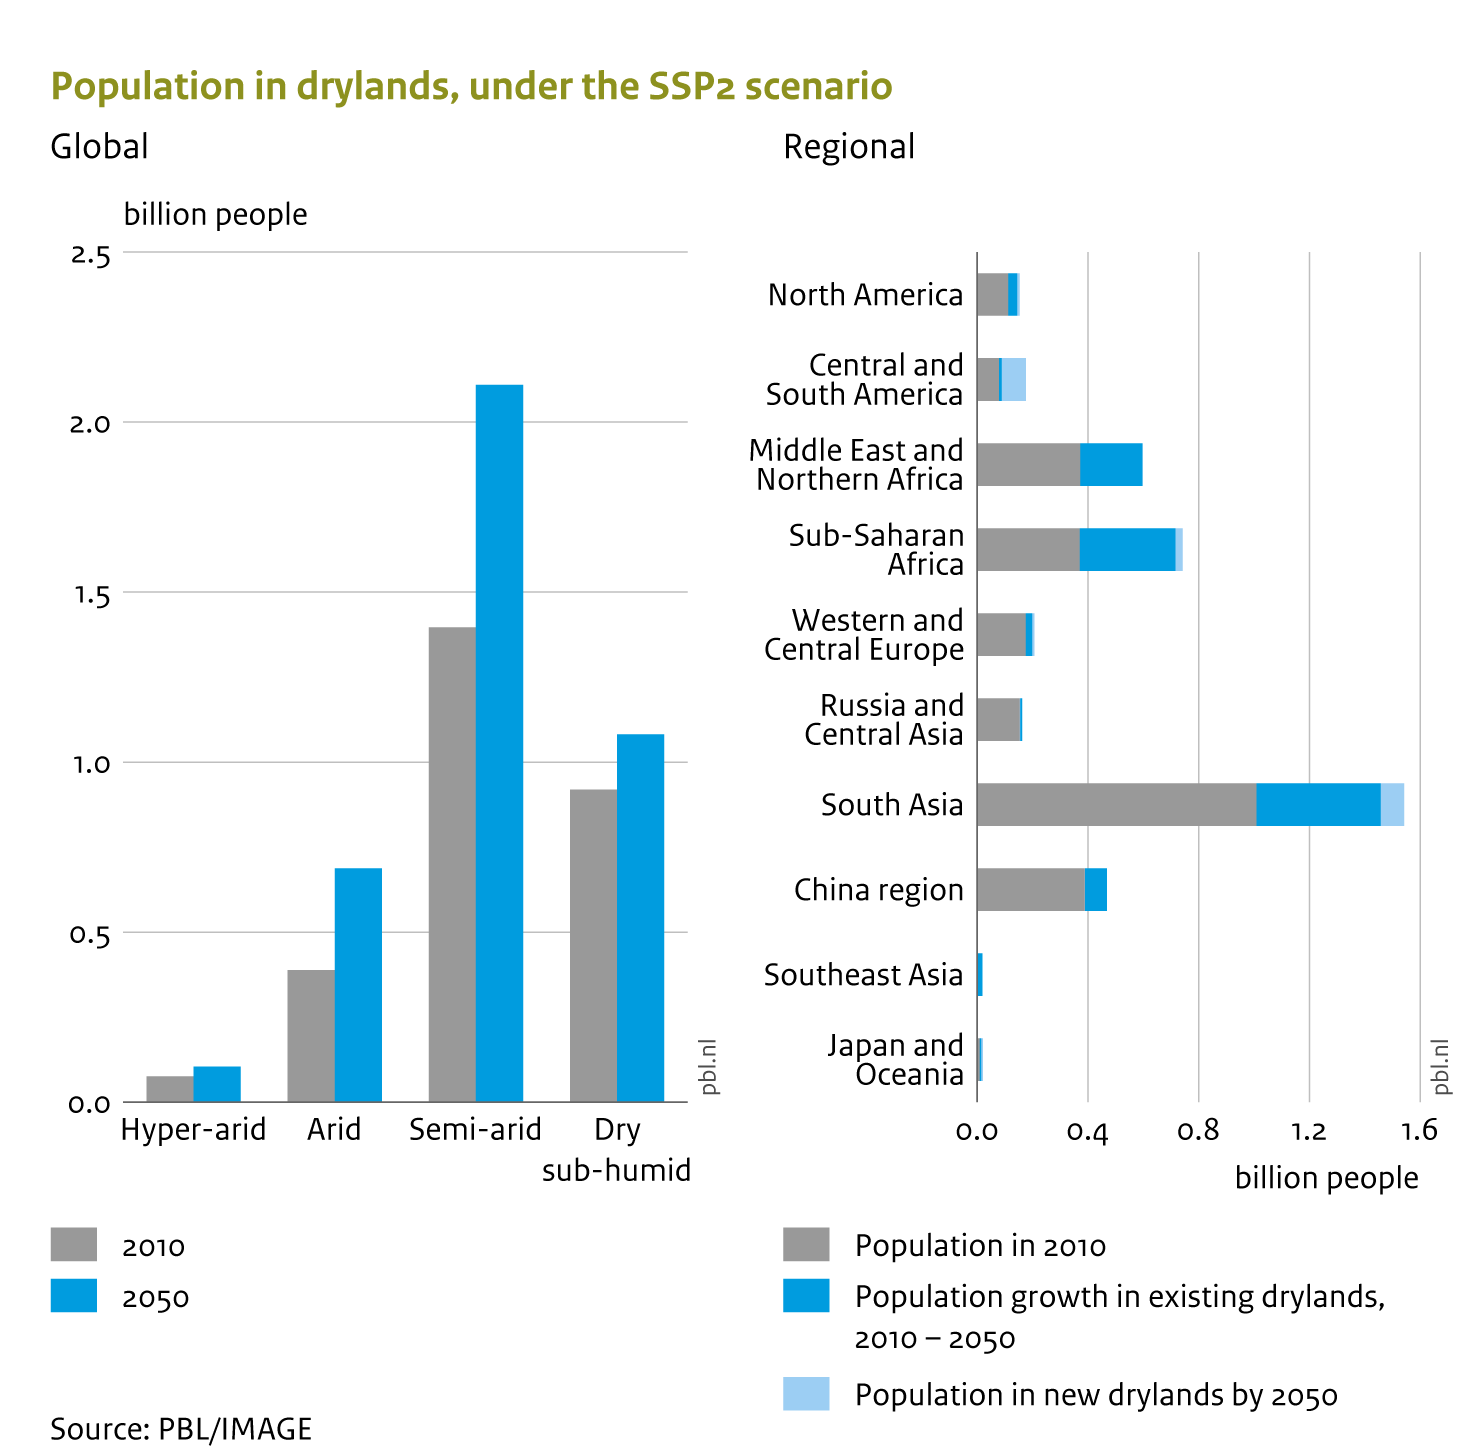 Drylands populations are projected to increase considerably by 2050Human populations in drylands are projected to increase by 40% to 50%, from 2.7 billion in 2010 to around 4.0 billion by 2050. This is a much more rapid increase than the 25% in non-drylands. South Asia is projected to see the largest increase in number of people living in drylands, over 500 million, and Sub-Saharan Africa is estimated to see its dryland population almost doubling.In this scenario, most of this change is driven by population growth in existing drylands and not as much by drylands expanding due to climate change.